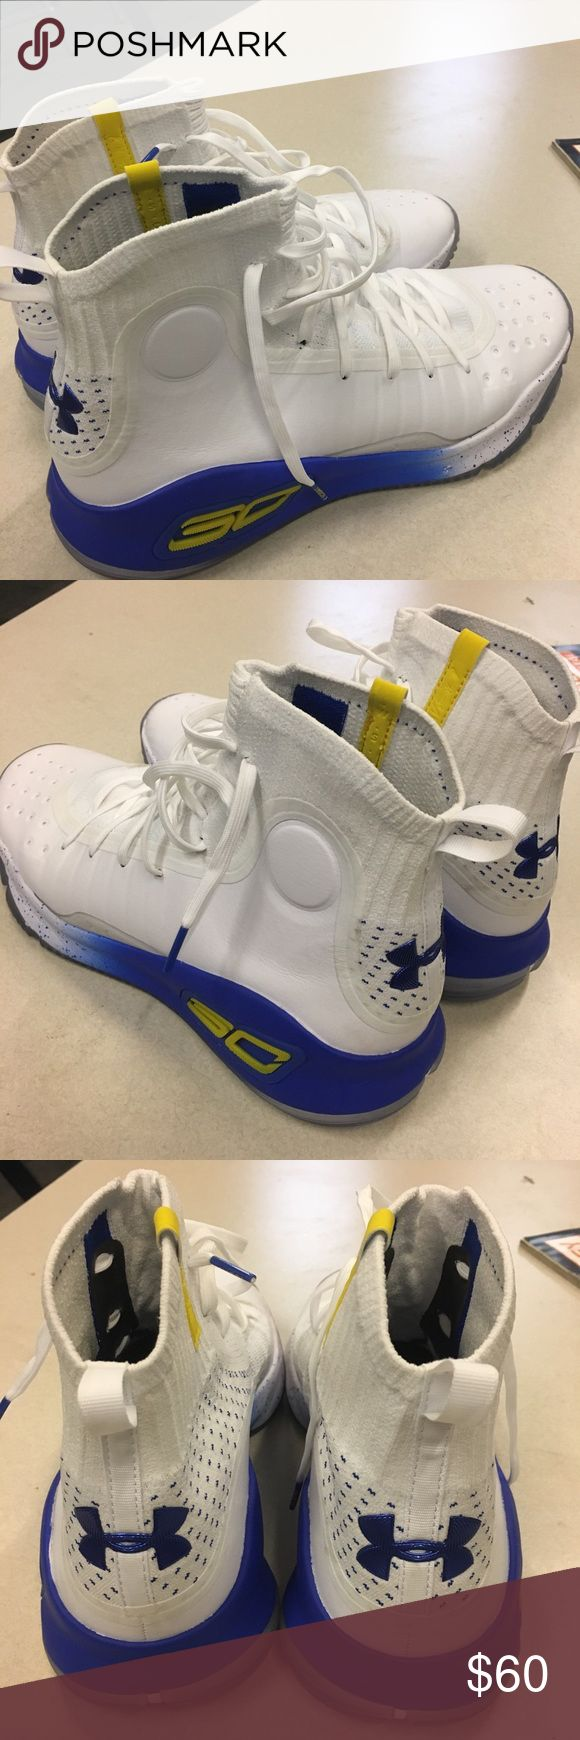 Stephen Curry 2's size 12 Brand new Steph Curry 2's, got the wrong size and they don't fit me so I am trying to sell them Shoes Athletic Shoes